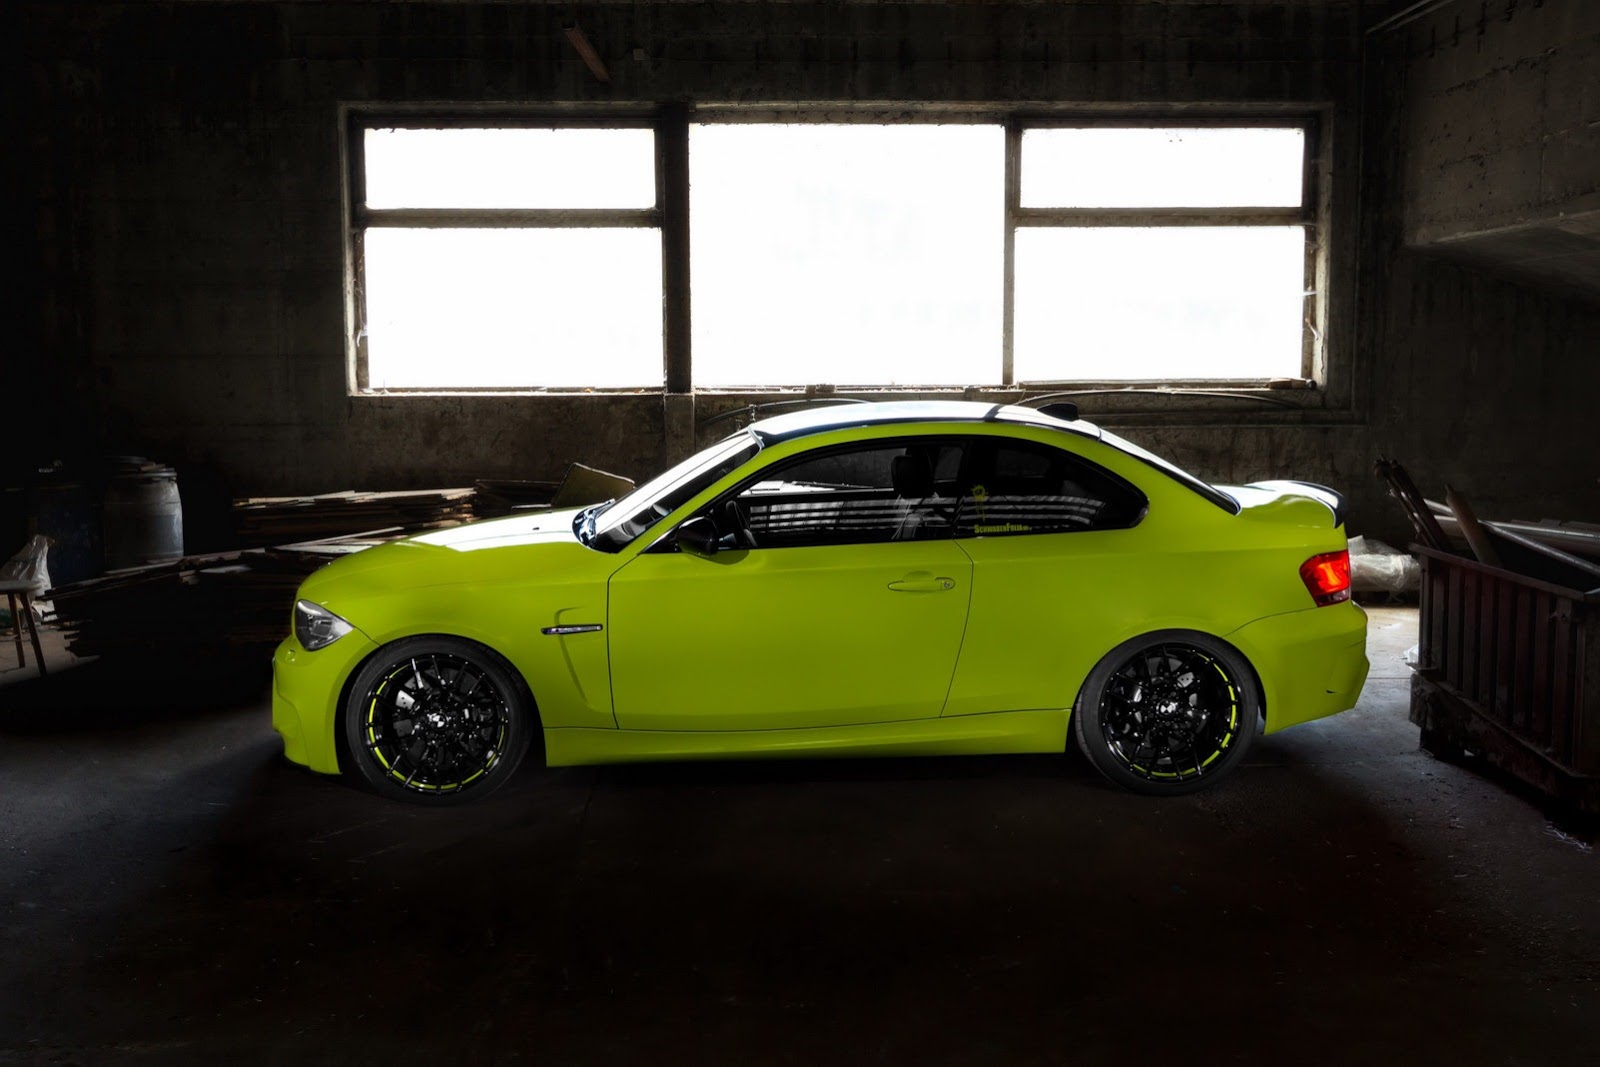 BMW 1 Series M Coupe by Schwabenfolia